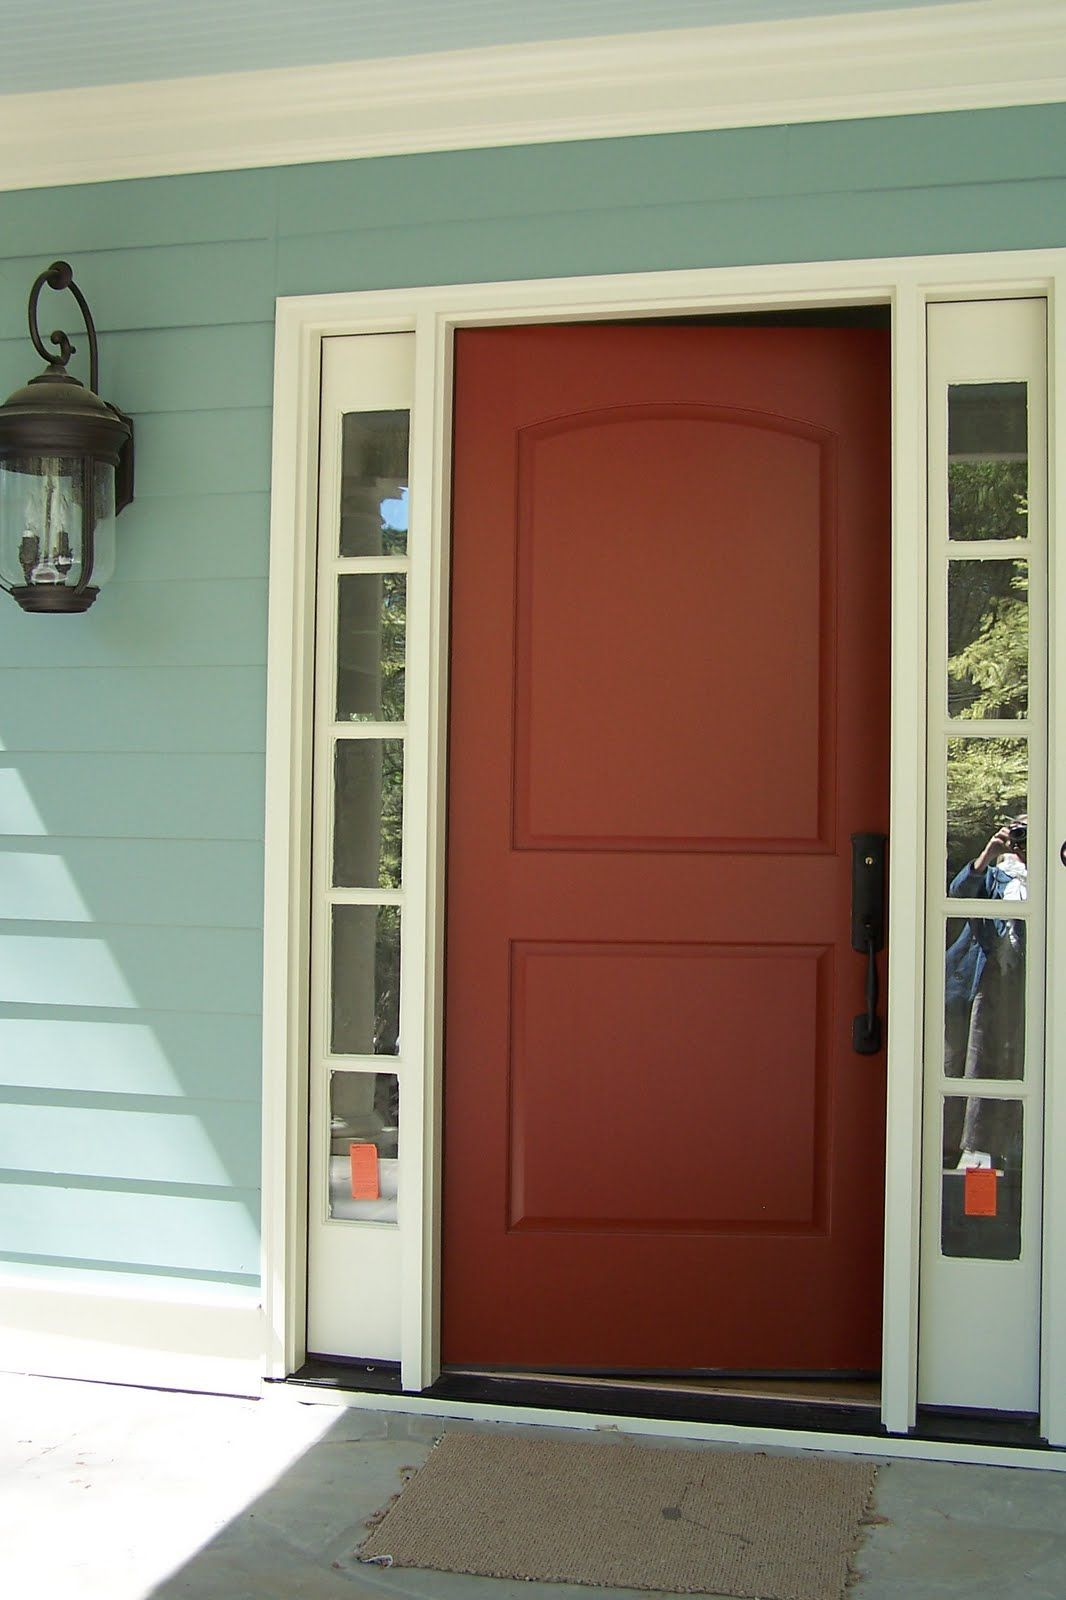 Choosing a front door color from tara dillard look inside your choosing a front door color from tara dillard look inside your home for a front rubansaba